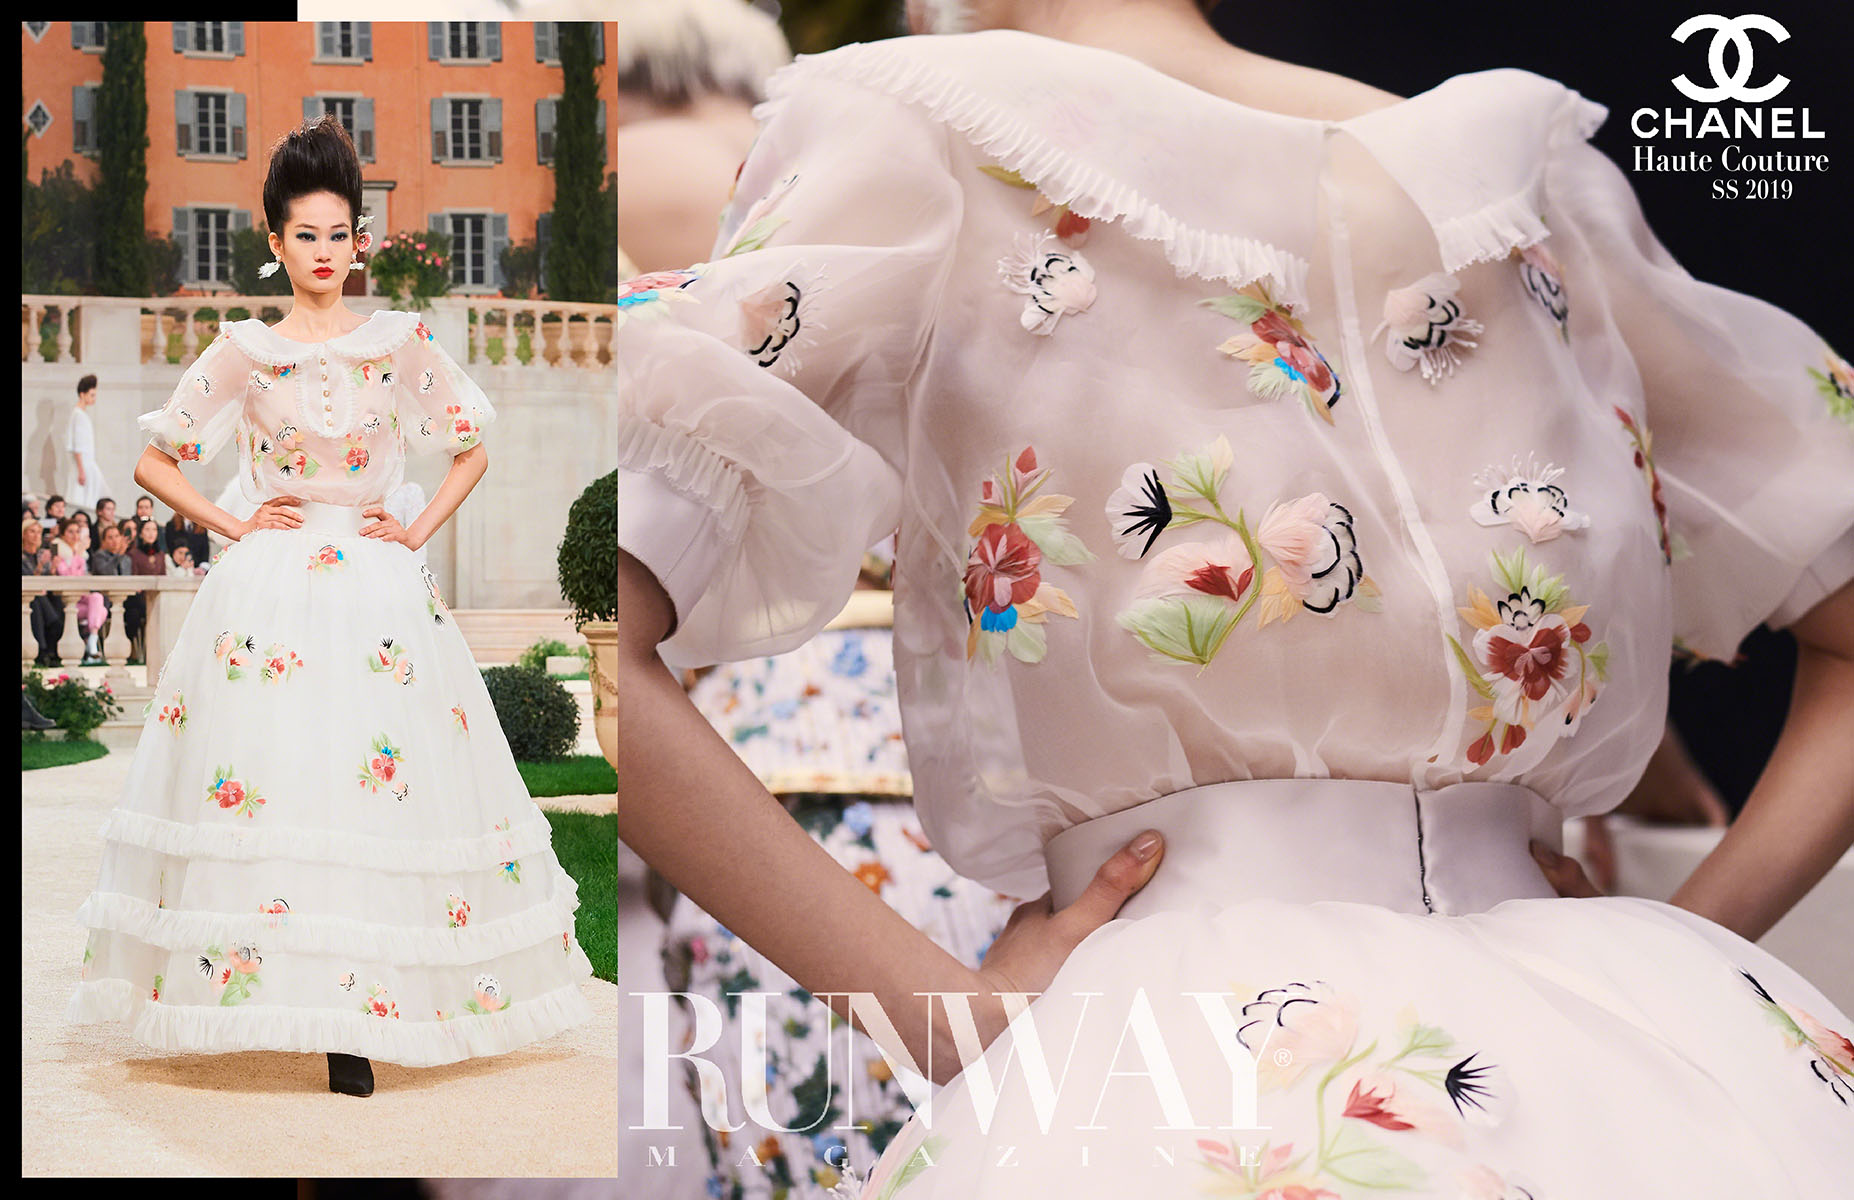 CHANEL Haute Couture Spring Summer 2019 by Runway Magazine - Last collection of Karl Lagerfeld